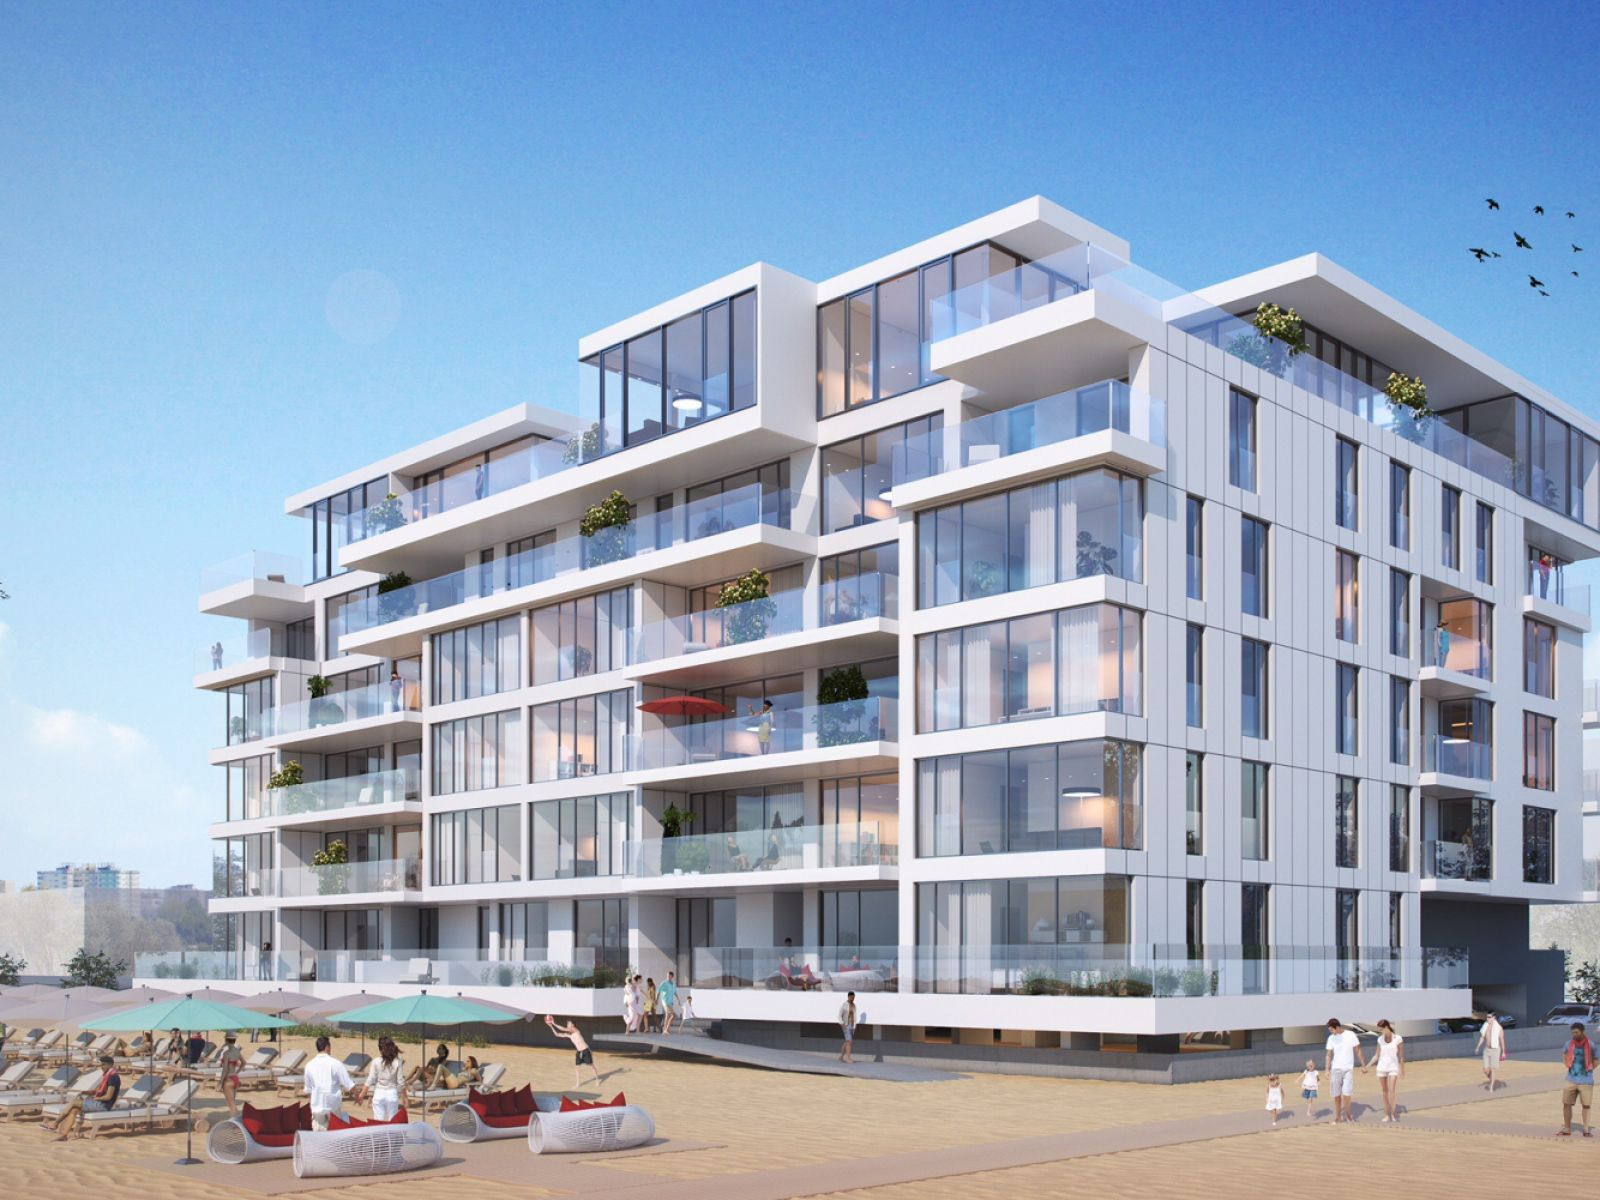 Neo Mamaia to receive building permits: site works begin this month